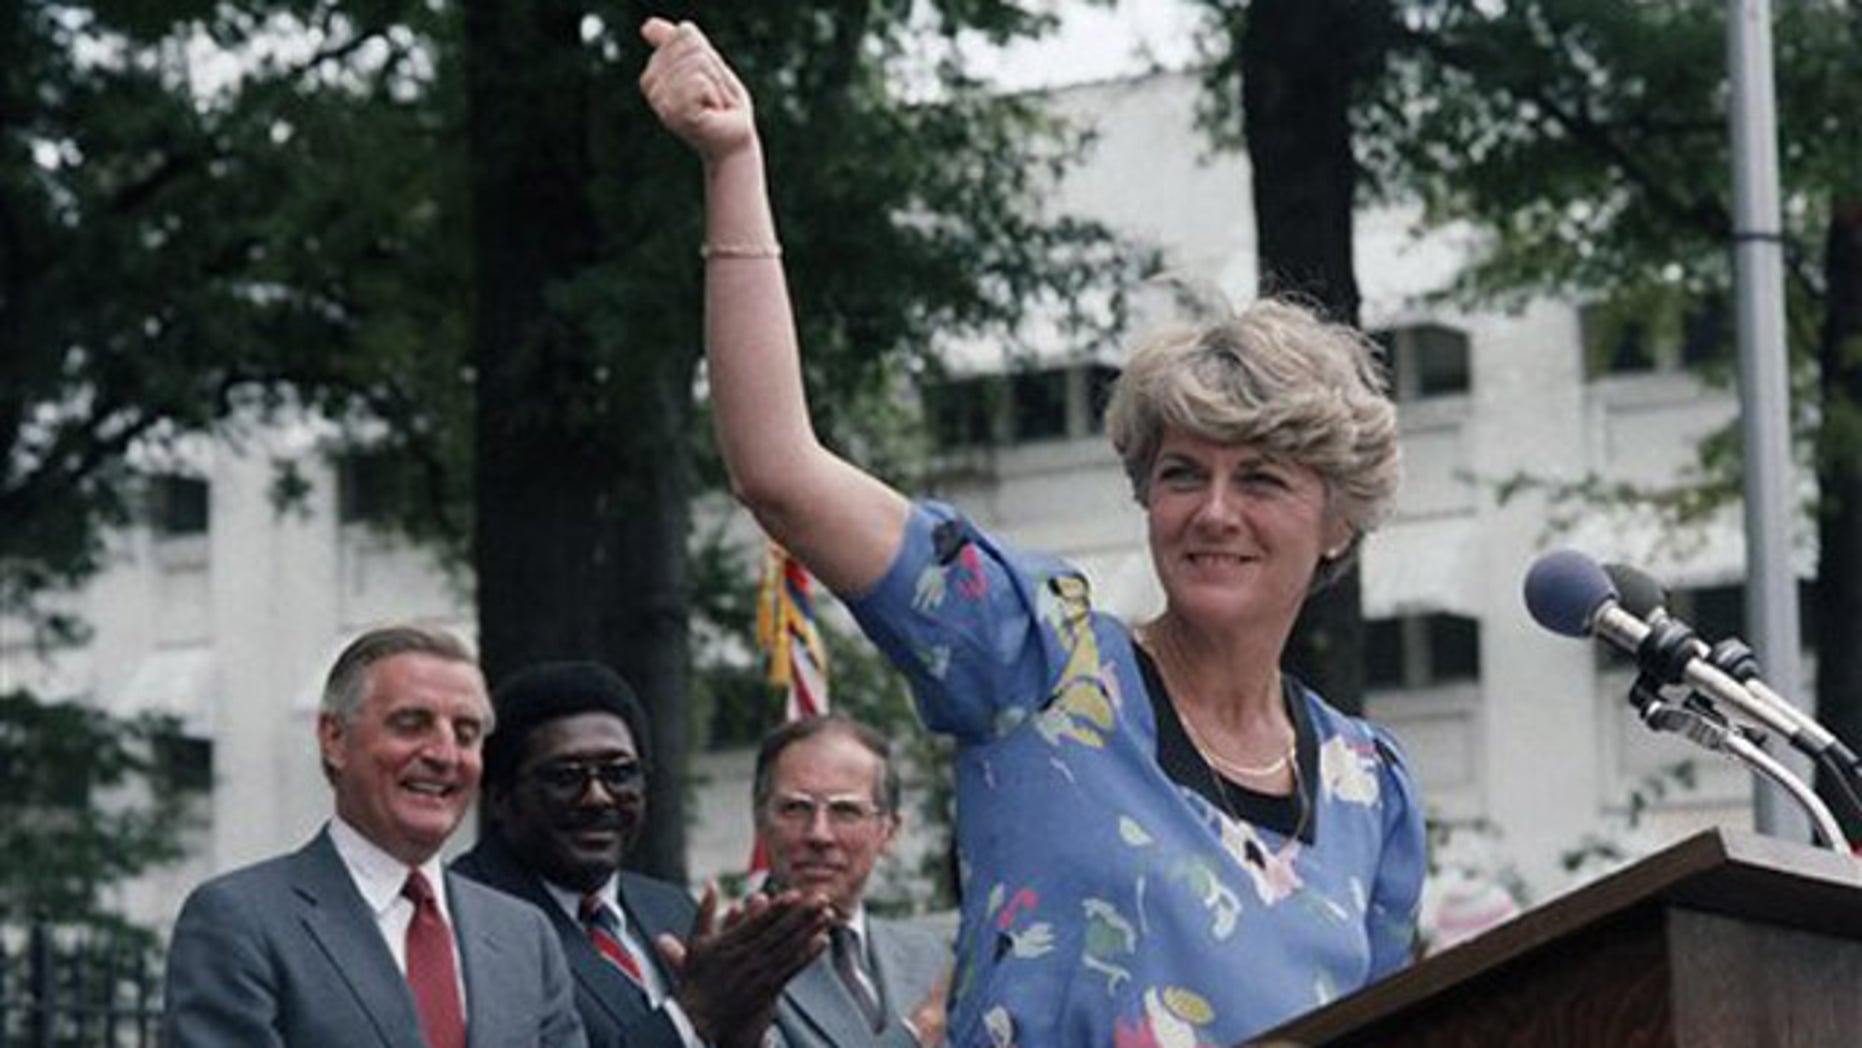 FILE - In this Wednesday, Aug. 1, 1984 file picture, Democratic vice presidential candidate Geraldine Ferraro gives the thumbs-up sign to a crowd of supporters in downtown Jackson, Miss. as Walter Mondale and Ferraro kicked off their 1984 campaign in this Southern city. Behind Ferraro are Mondale, state Rep. Robert Clark and former Gov. William Winter.